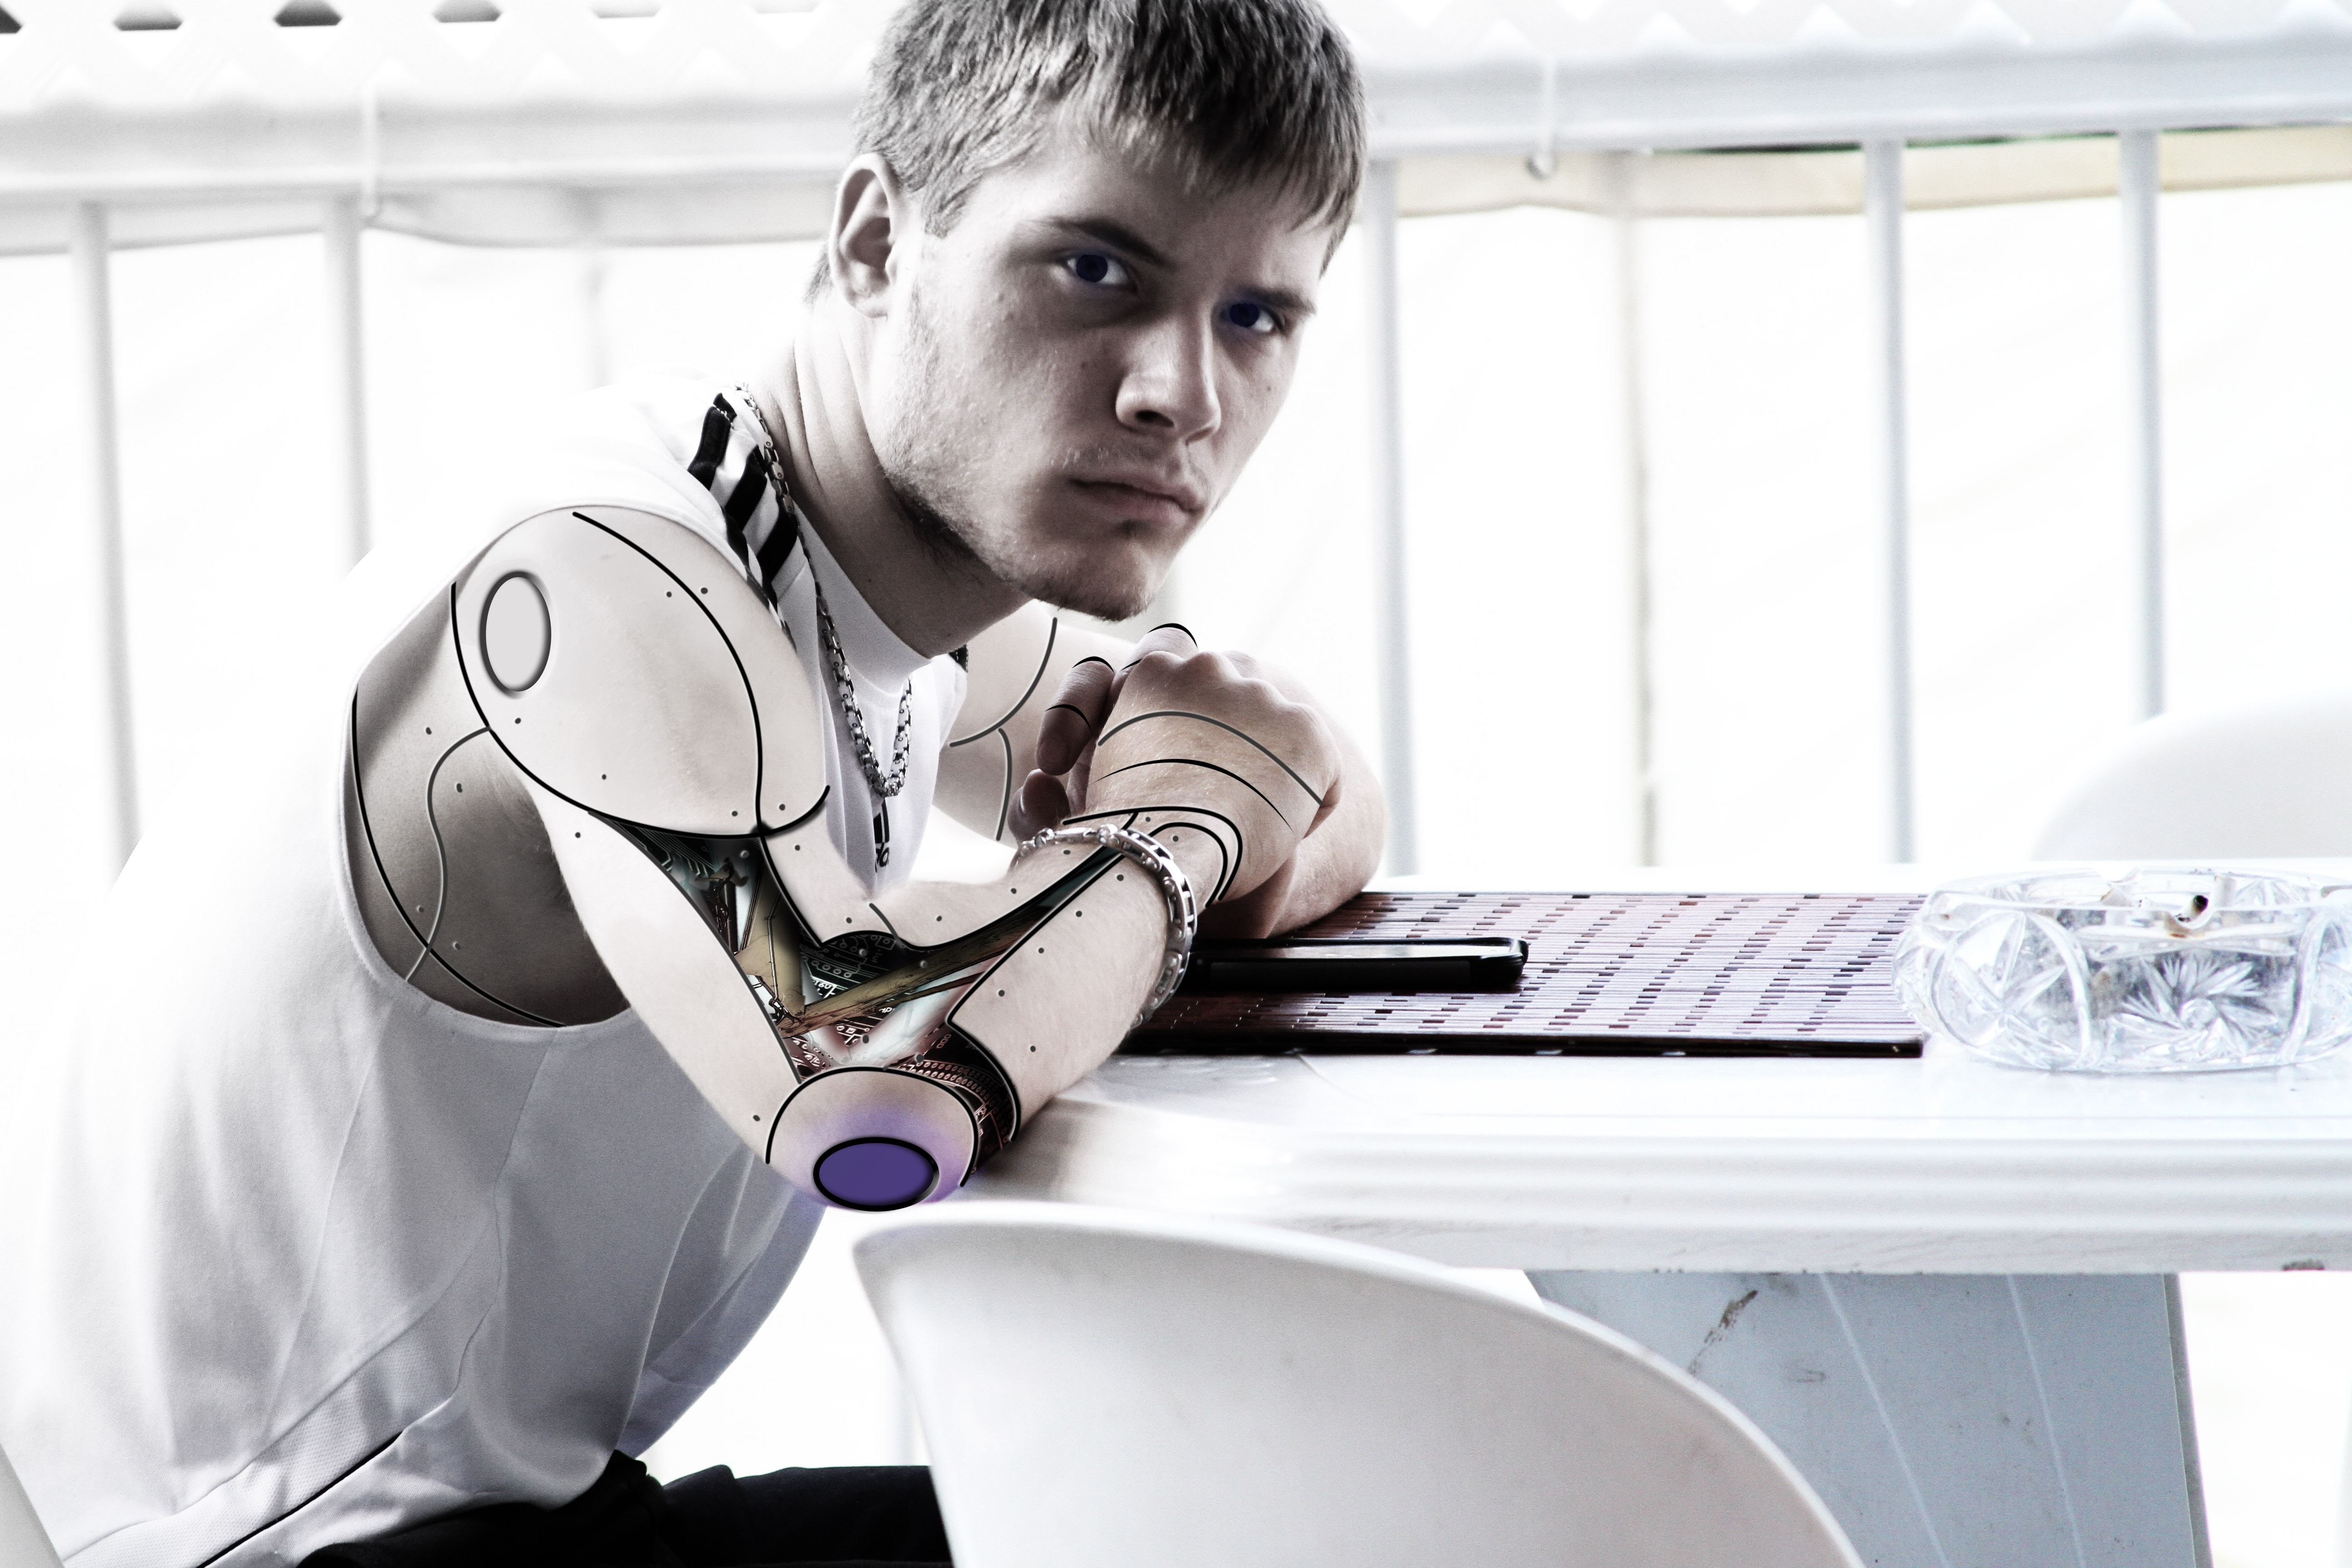 Man With Steel Artificial Arm Sitting in Front of White Table, Ai, Man, Technology, Science, HQ Photo